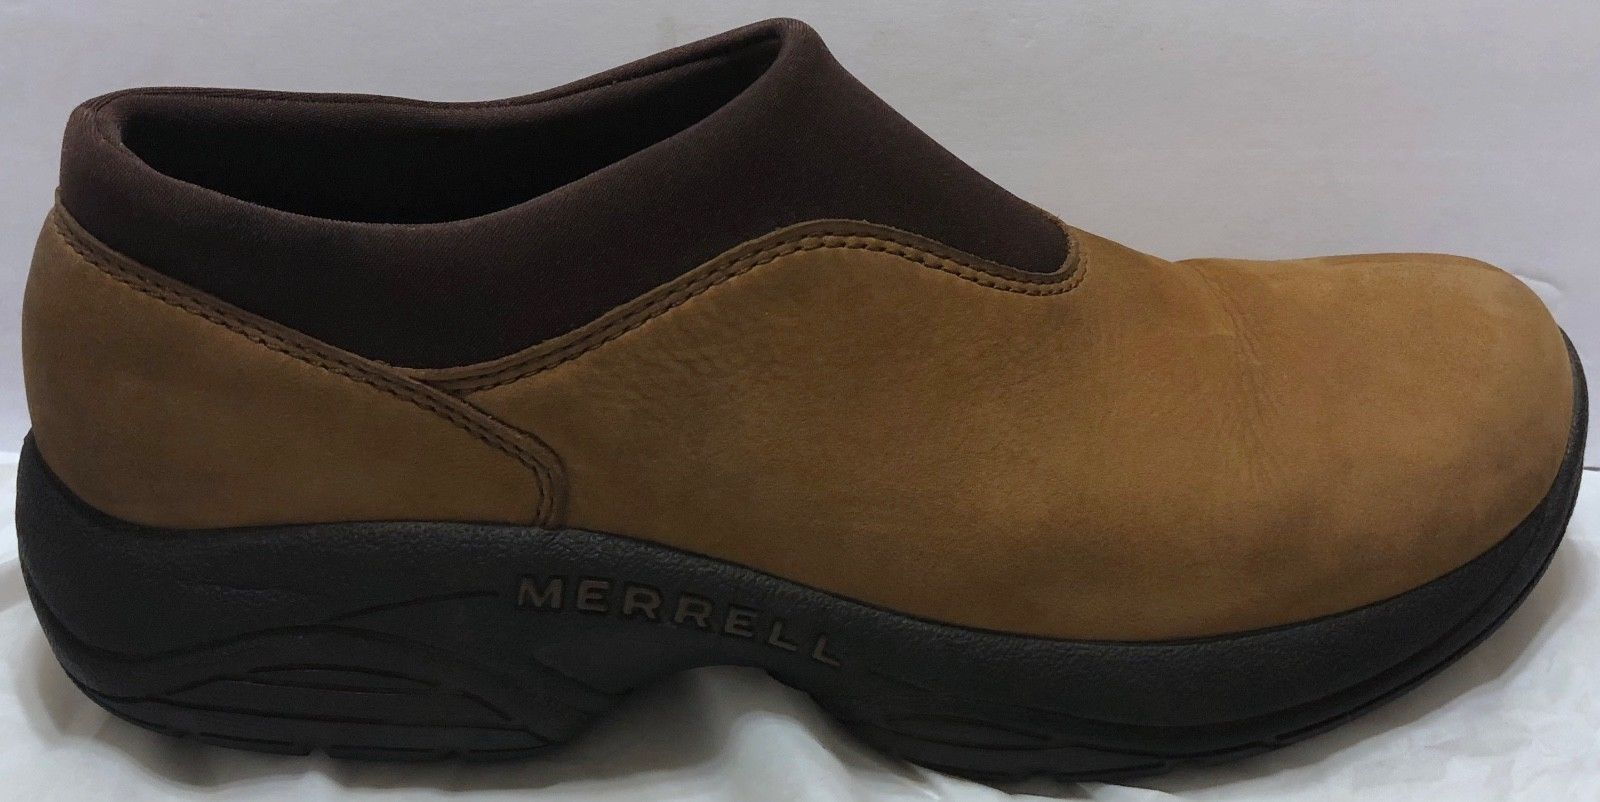 Merrell Primo Moc Mocha Nubuck Shoes Size 9.5 Slip On Hiking Trail Walking Brown